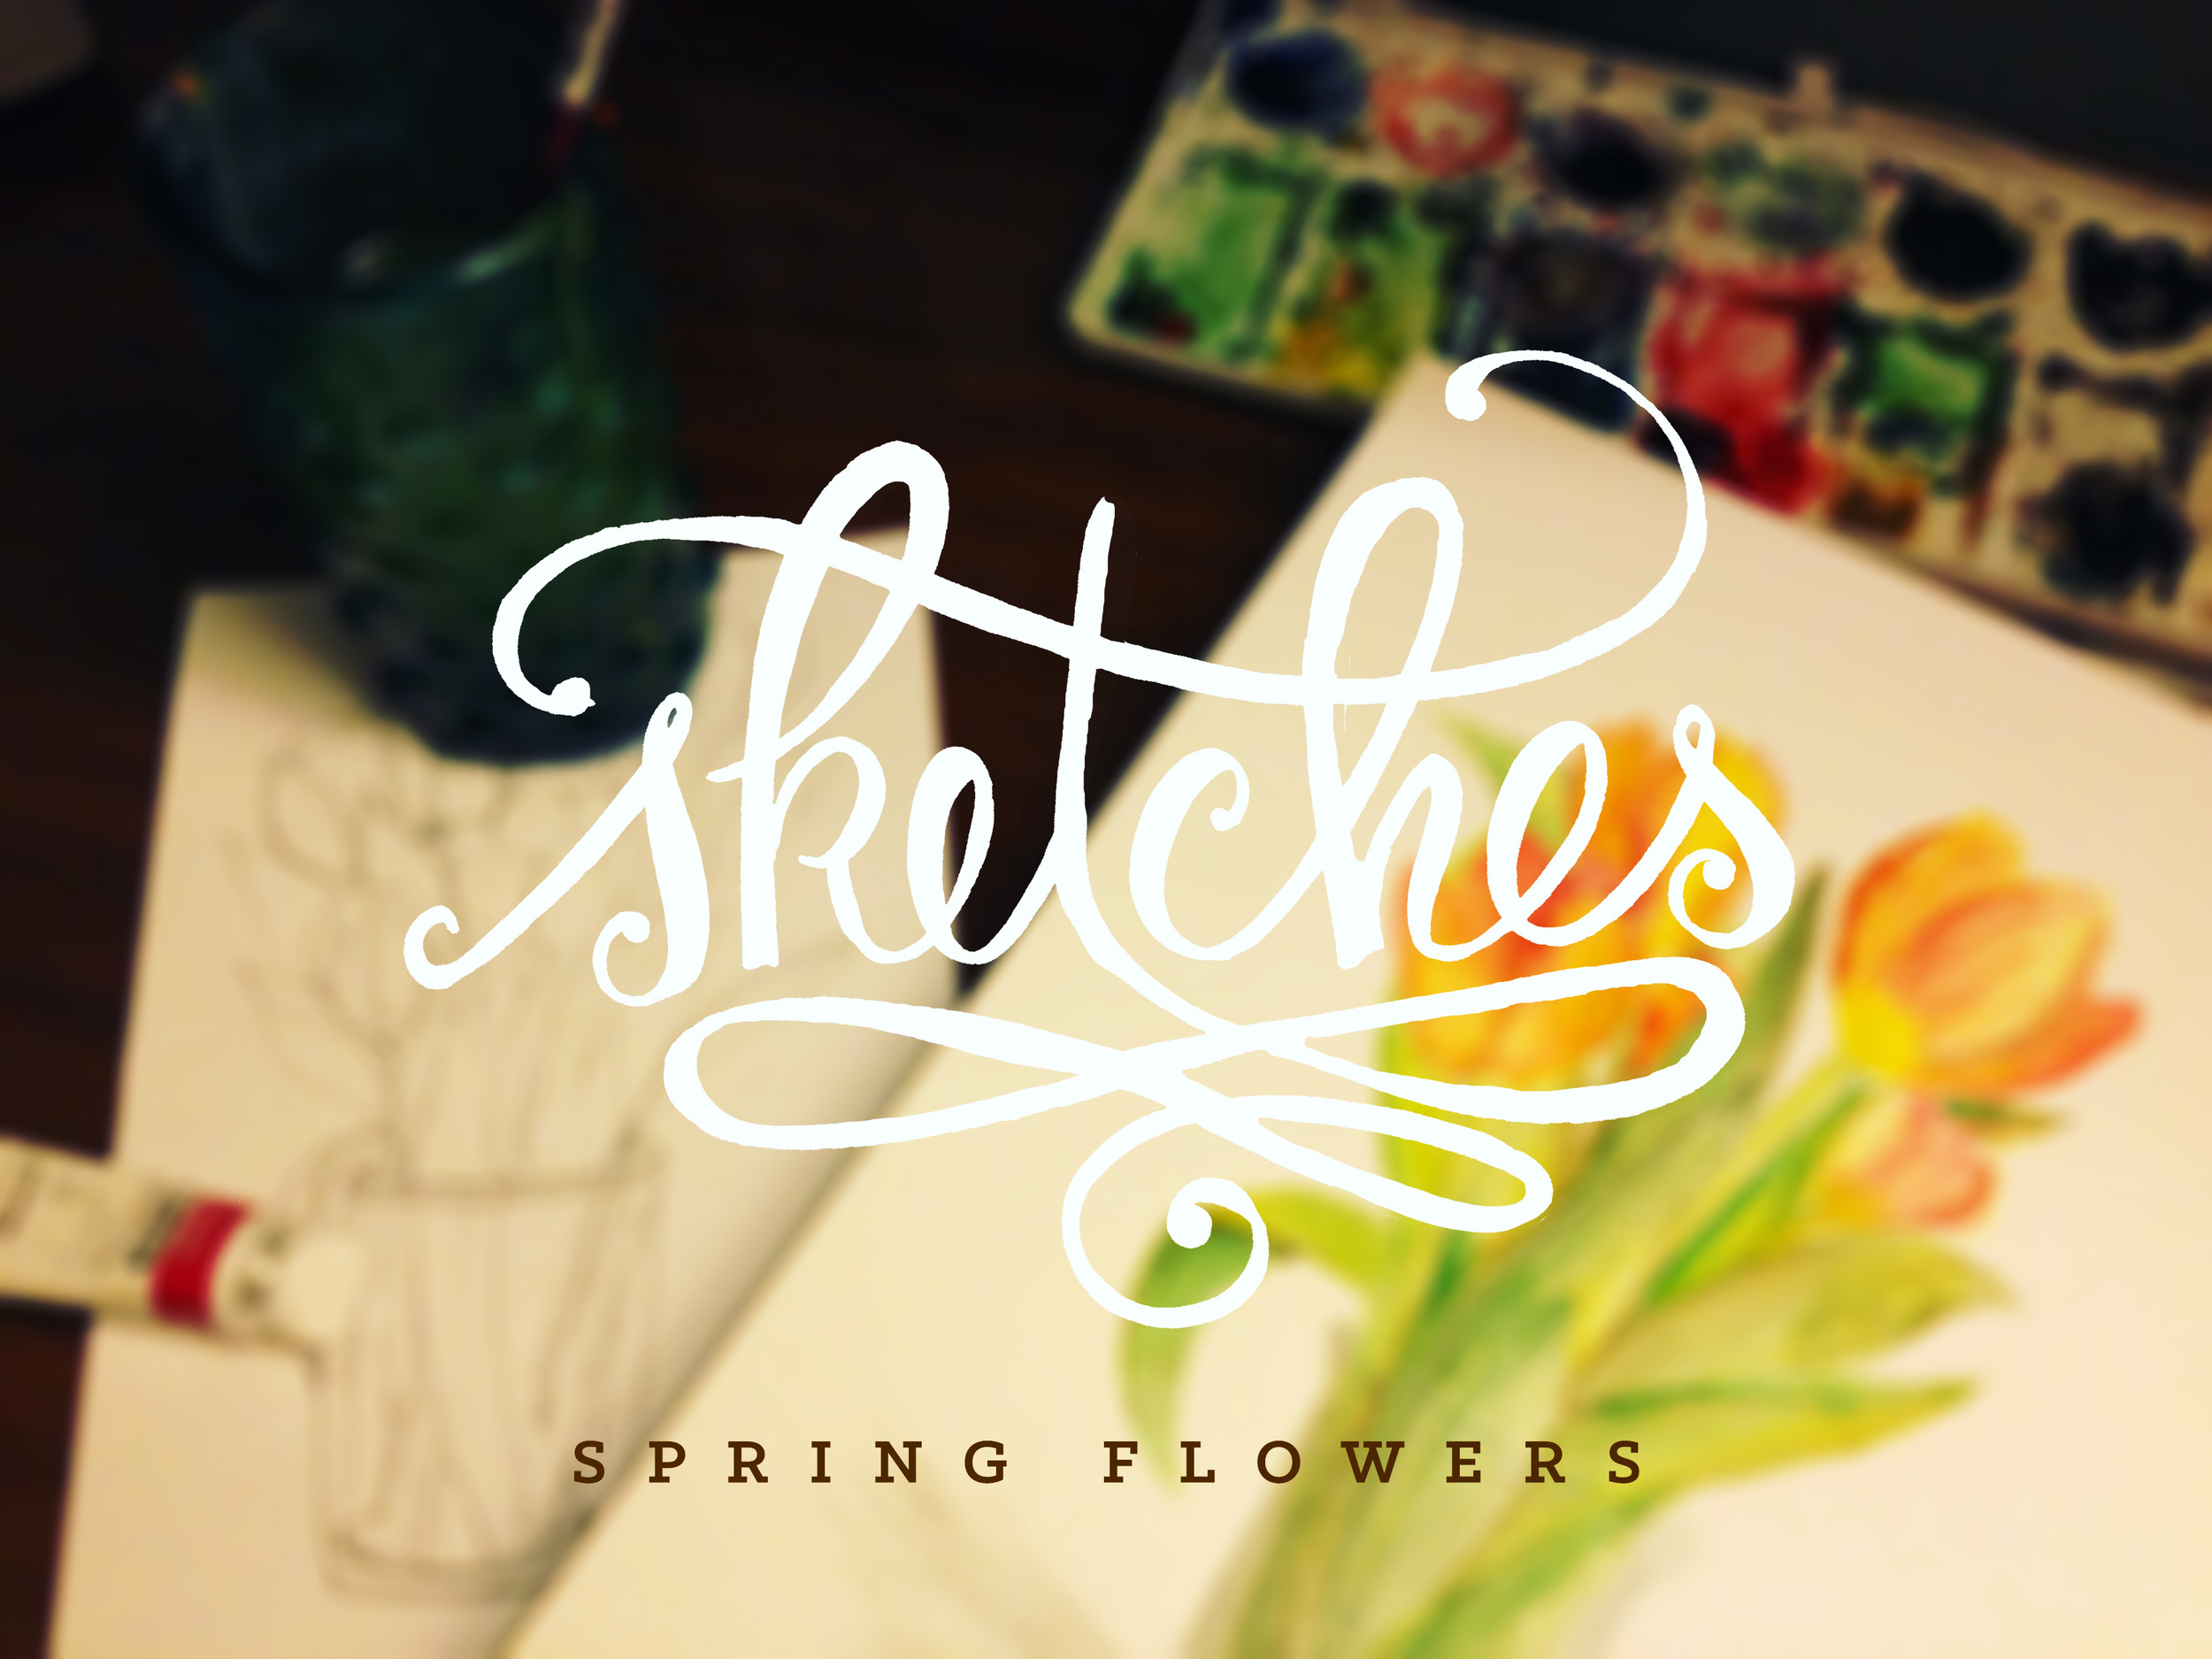 Sketches_flowers.jpg